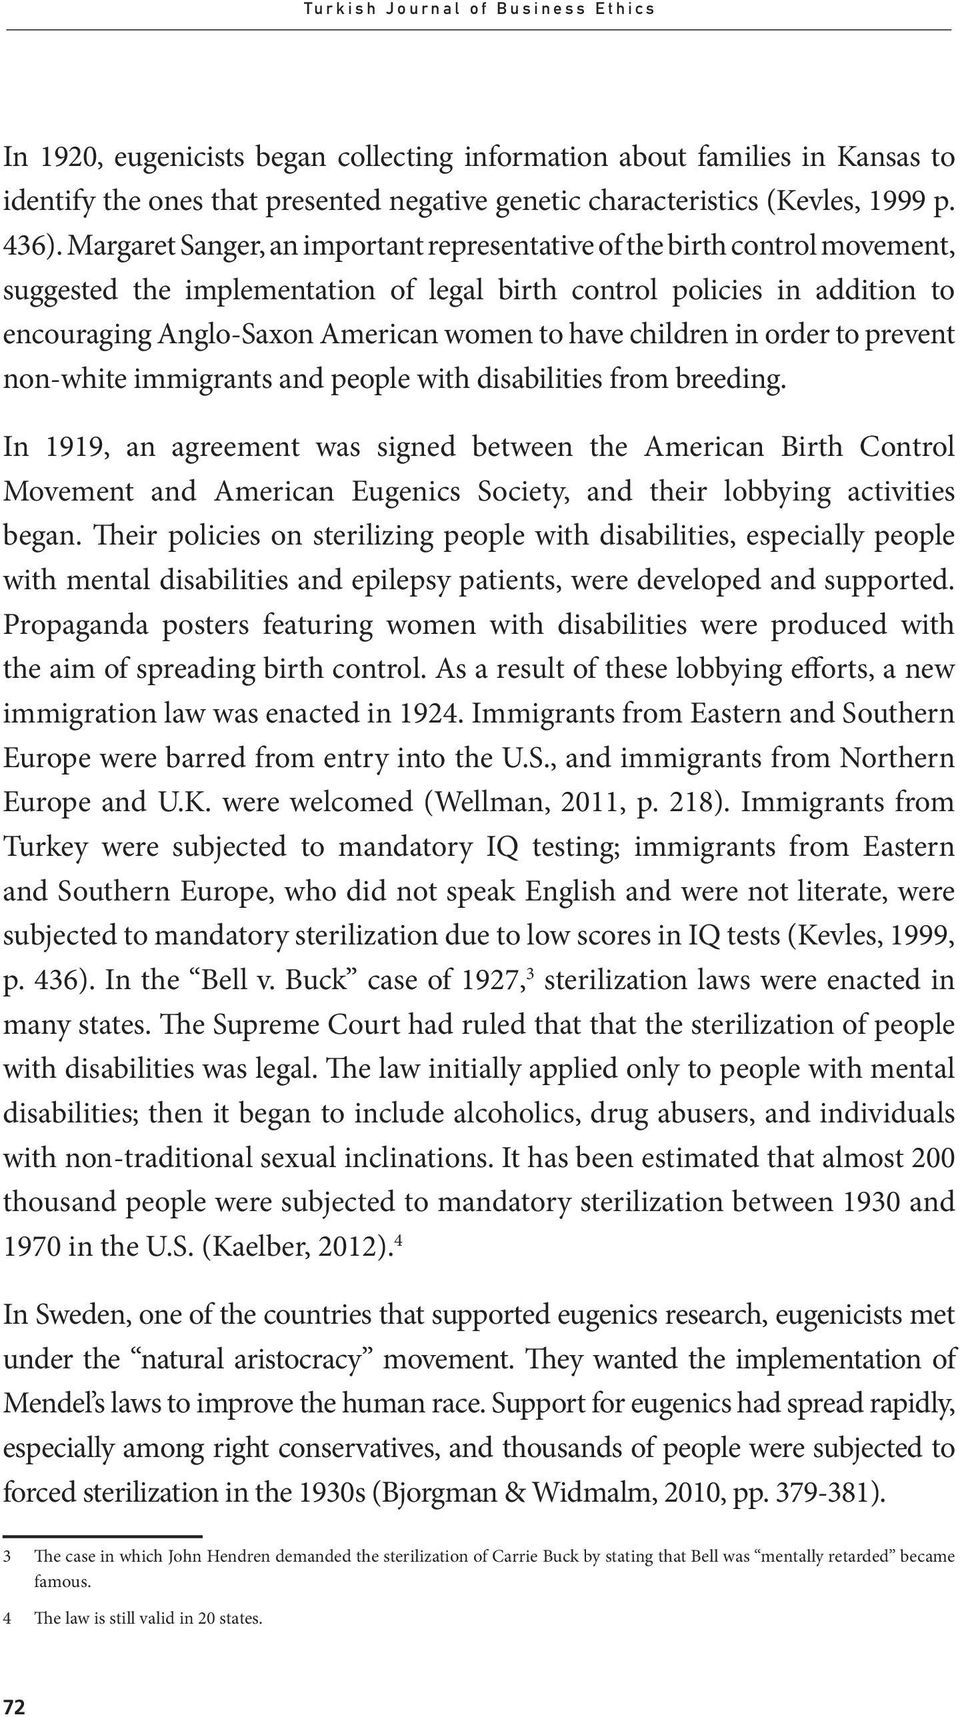 have children in order to prevent non-white immigrants and people with disabilities from breeding.